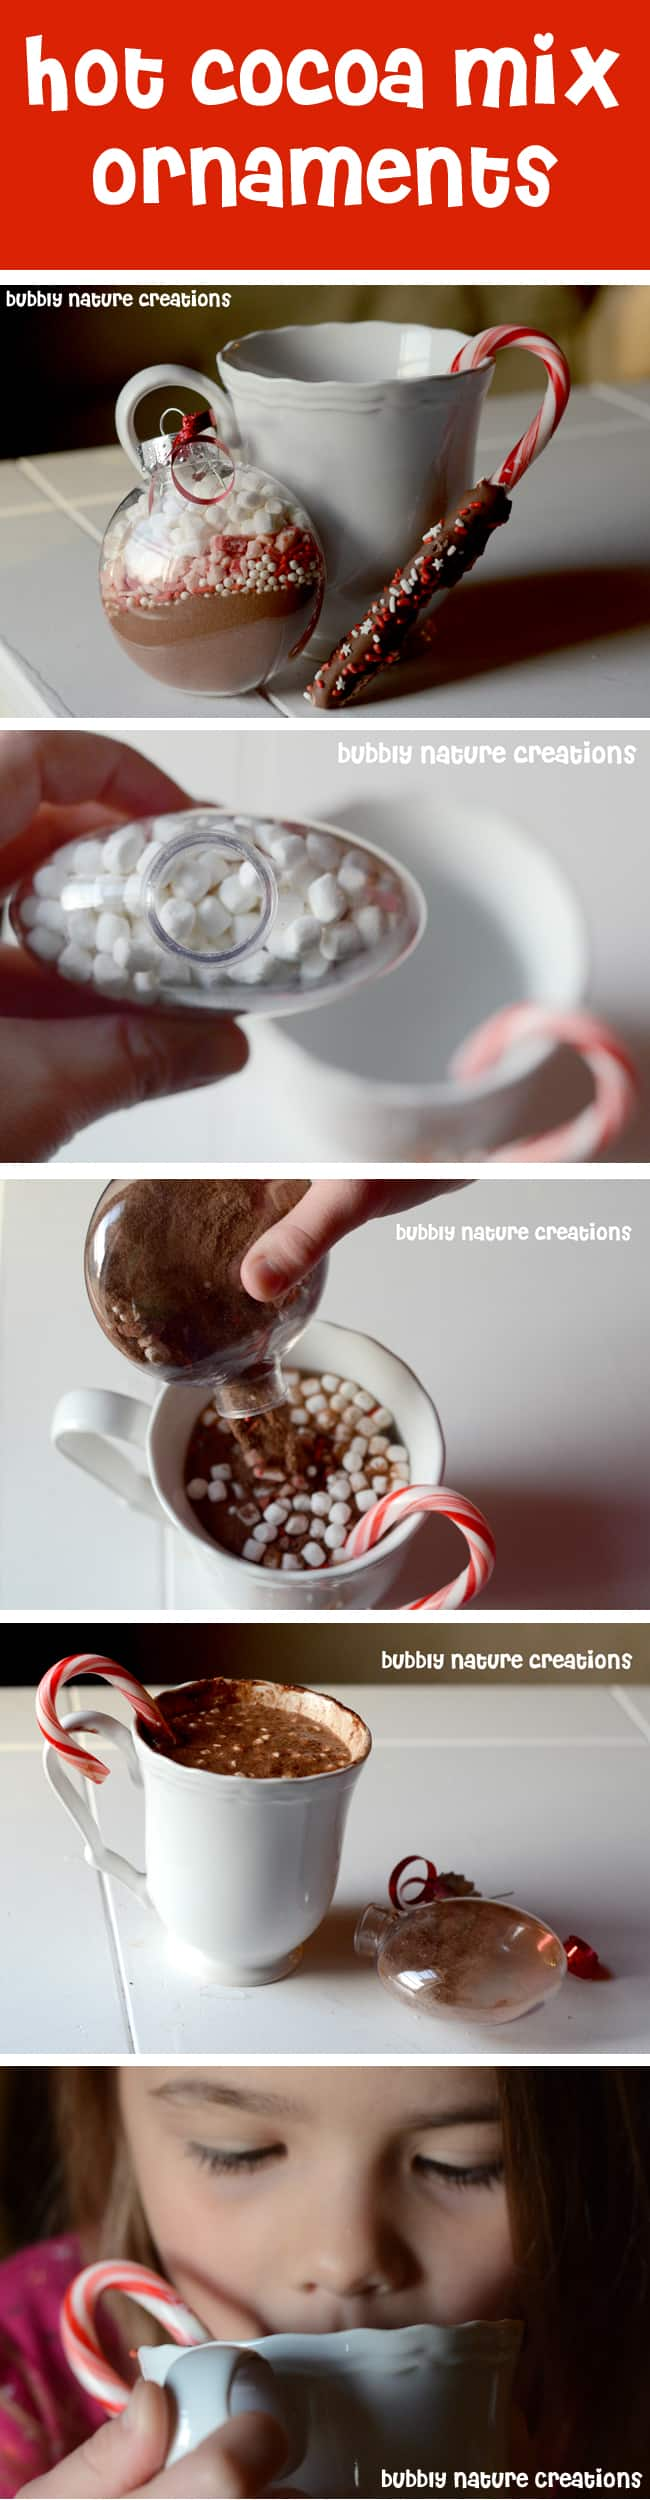 hot-cocoa-mix-oranaments-yum.jpg